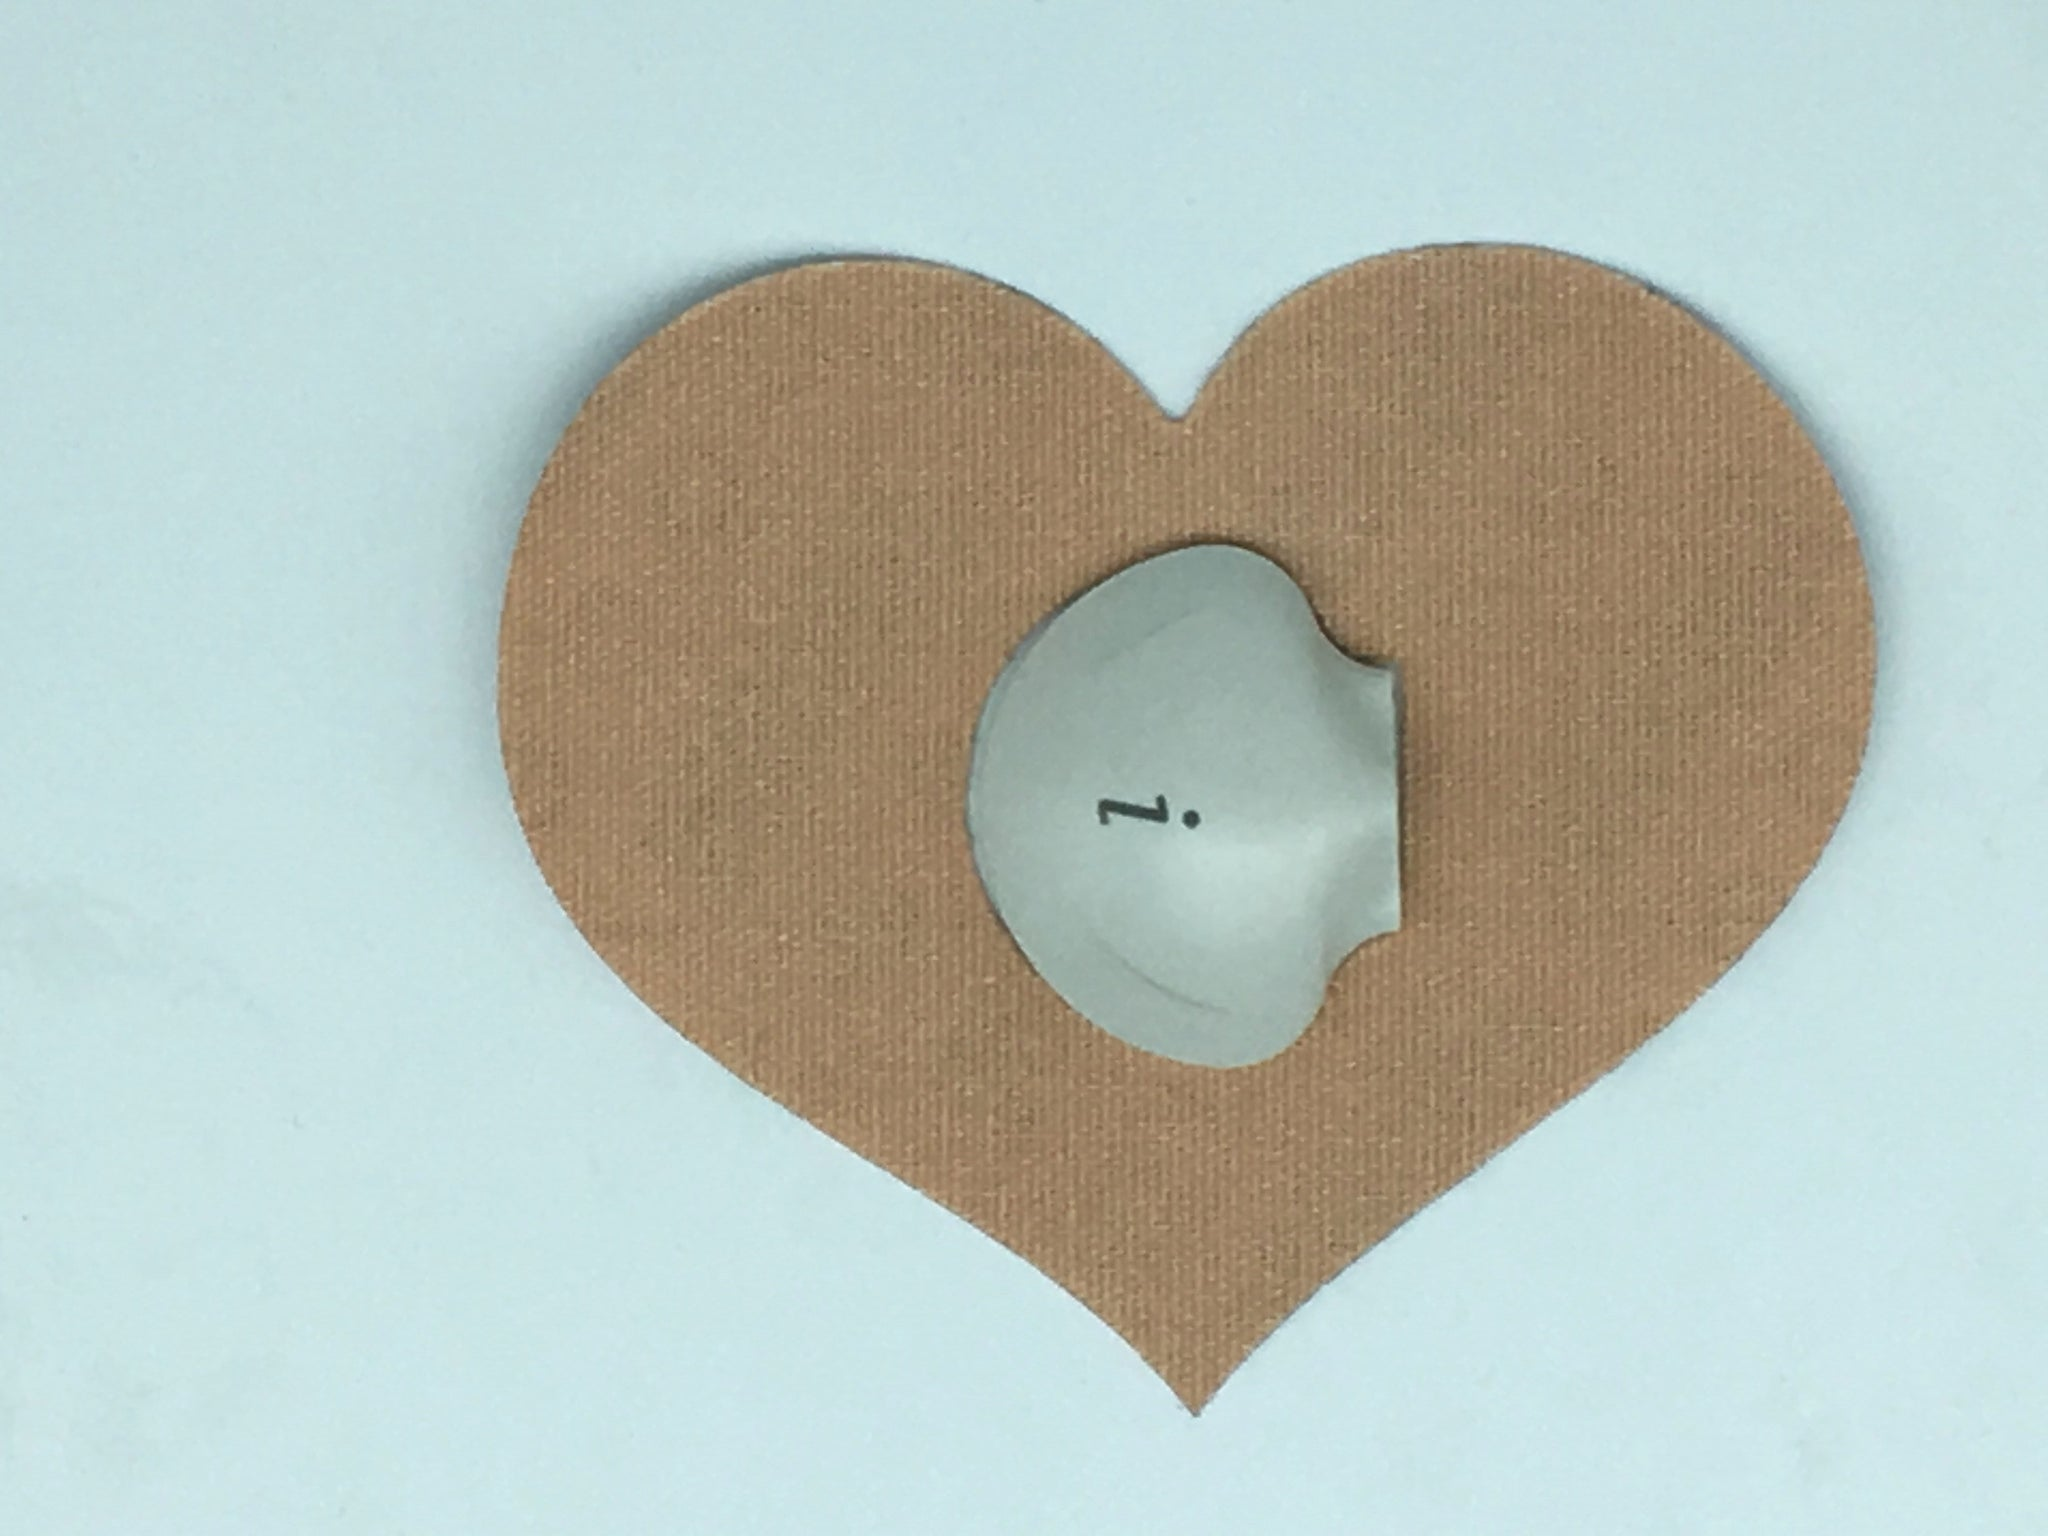 Medtronic - CGM Sensor Patches - Heart Shape – Diabetes Headquarters